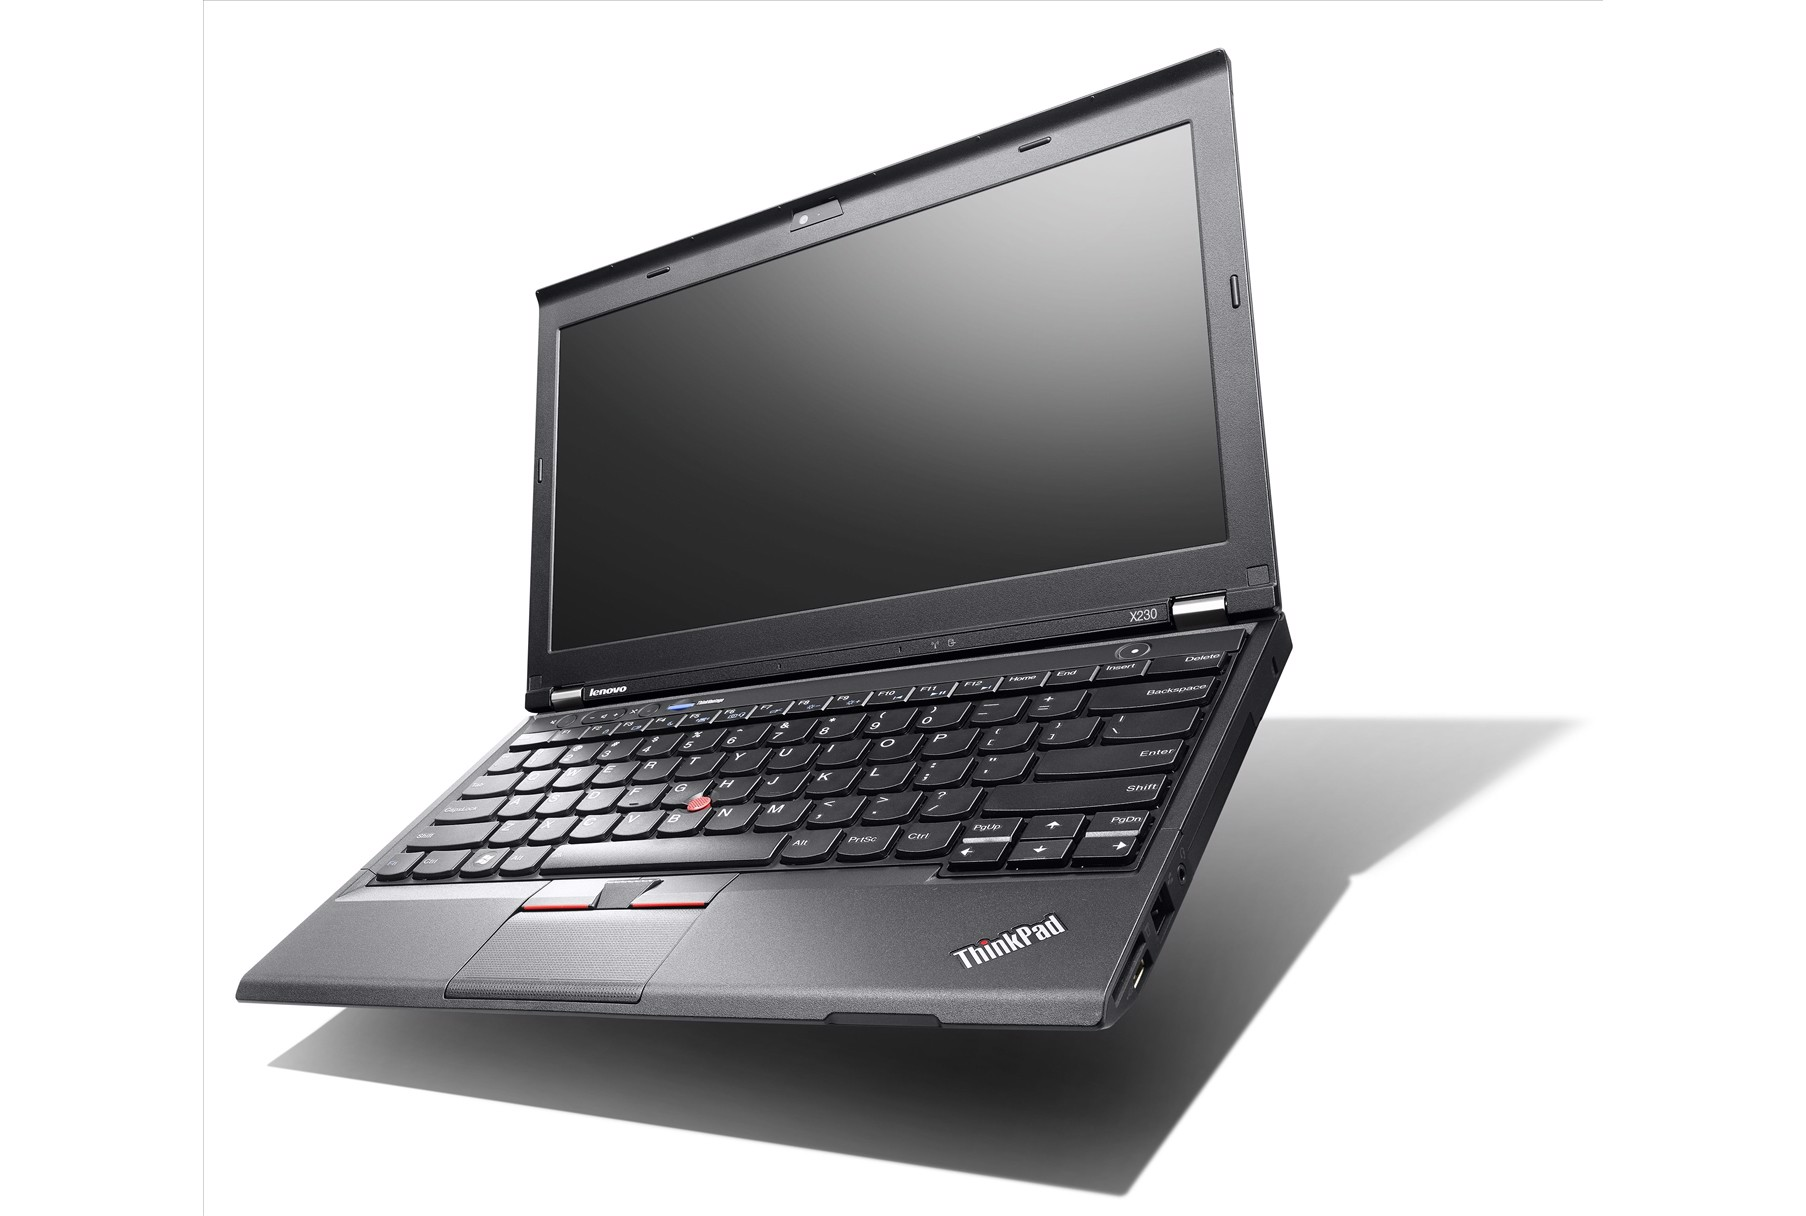 Laptop Lenovo Thinkpad X230 (Core i5 3320M, RAM 4GB, HDD 320GB, Intel HD Graphics 4000, 12.5 inch)